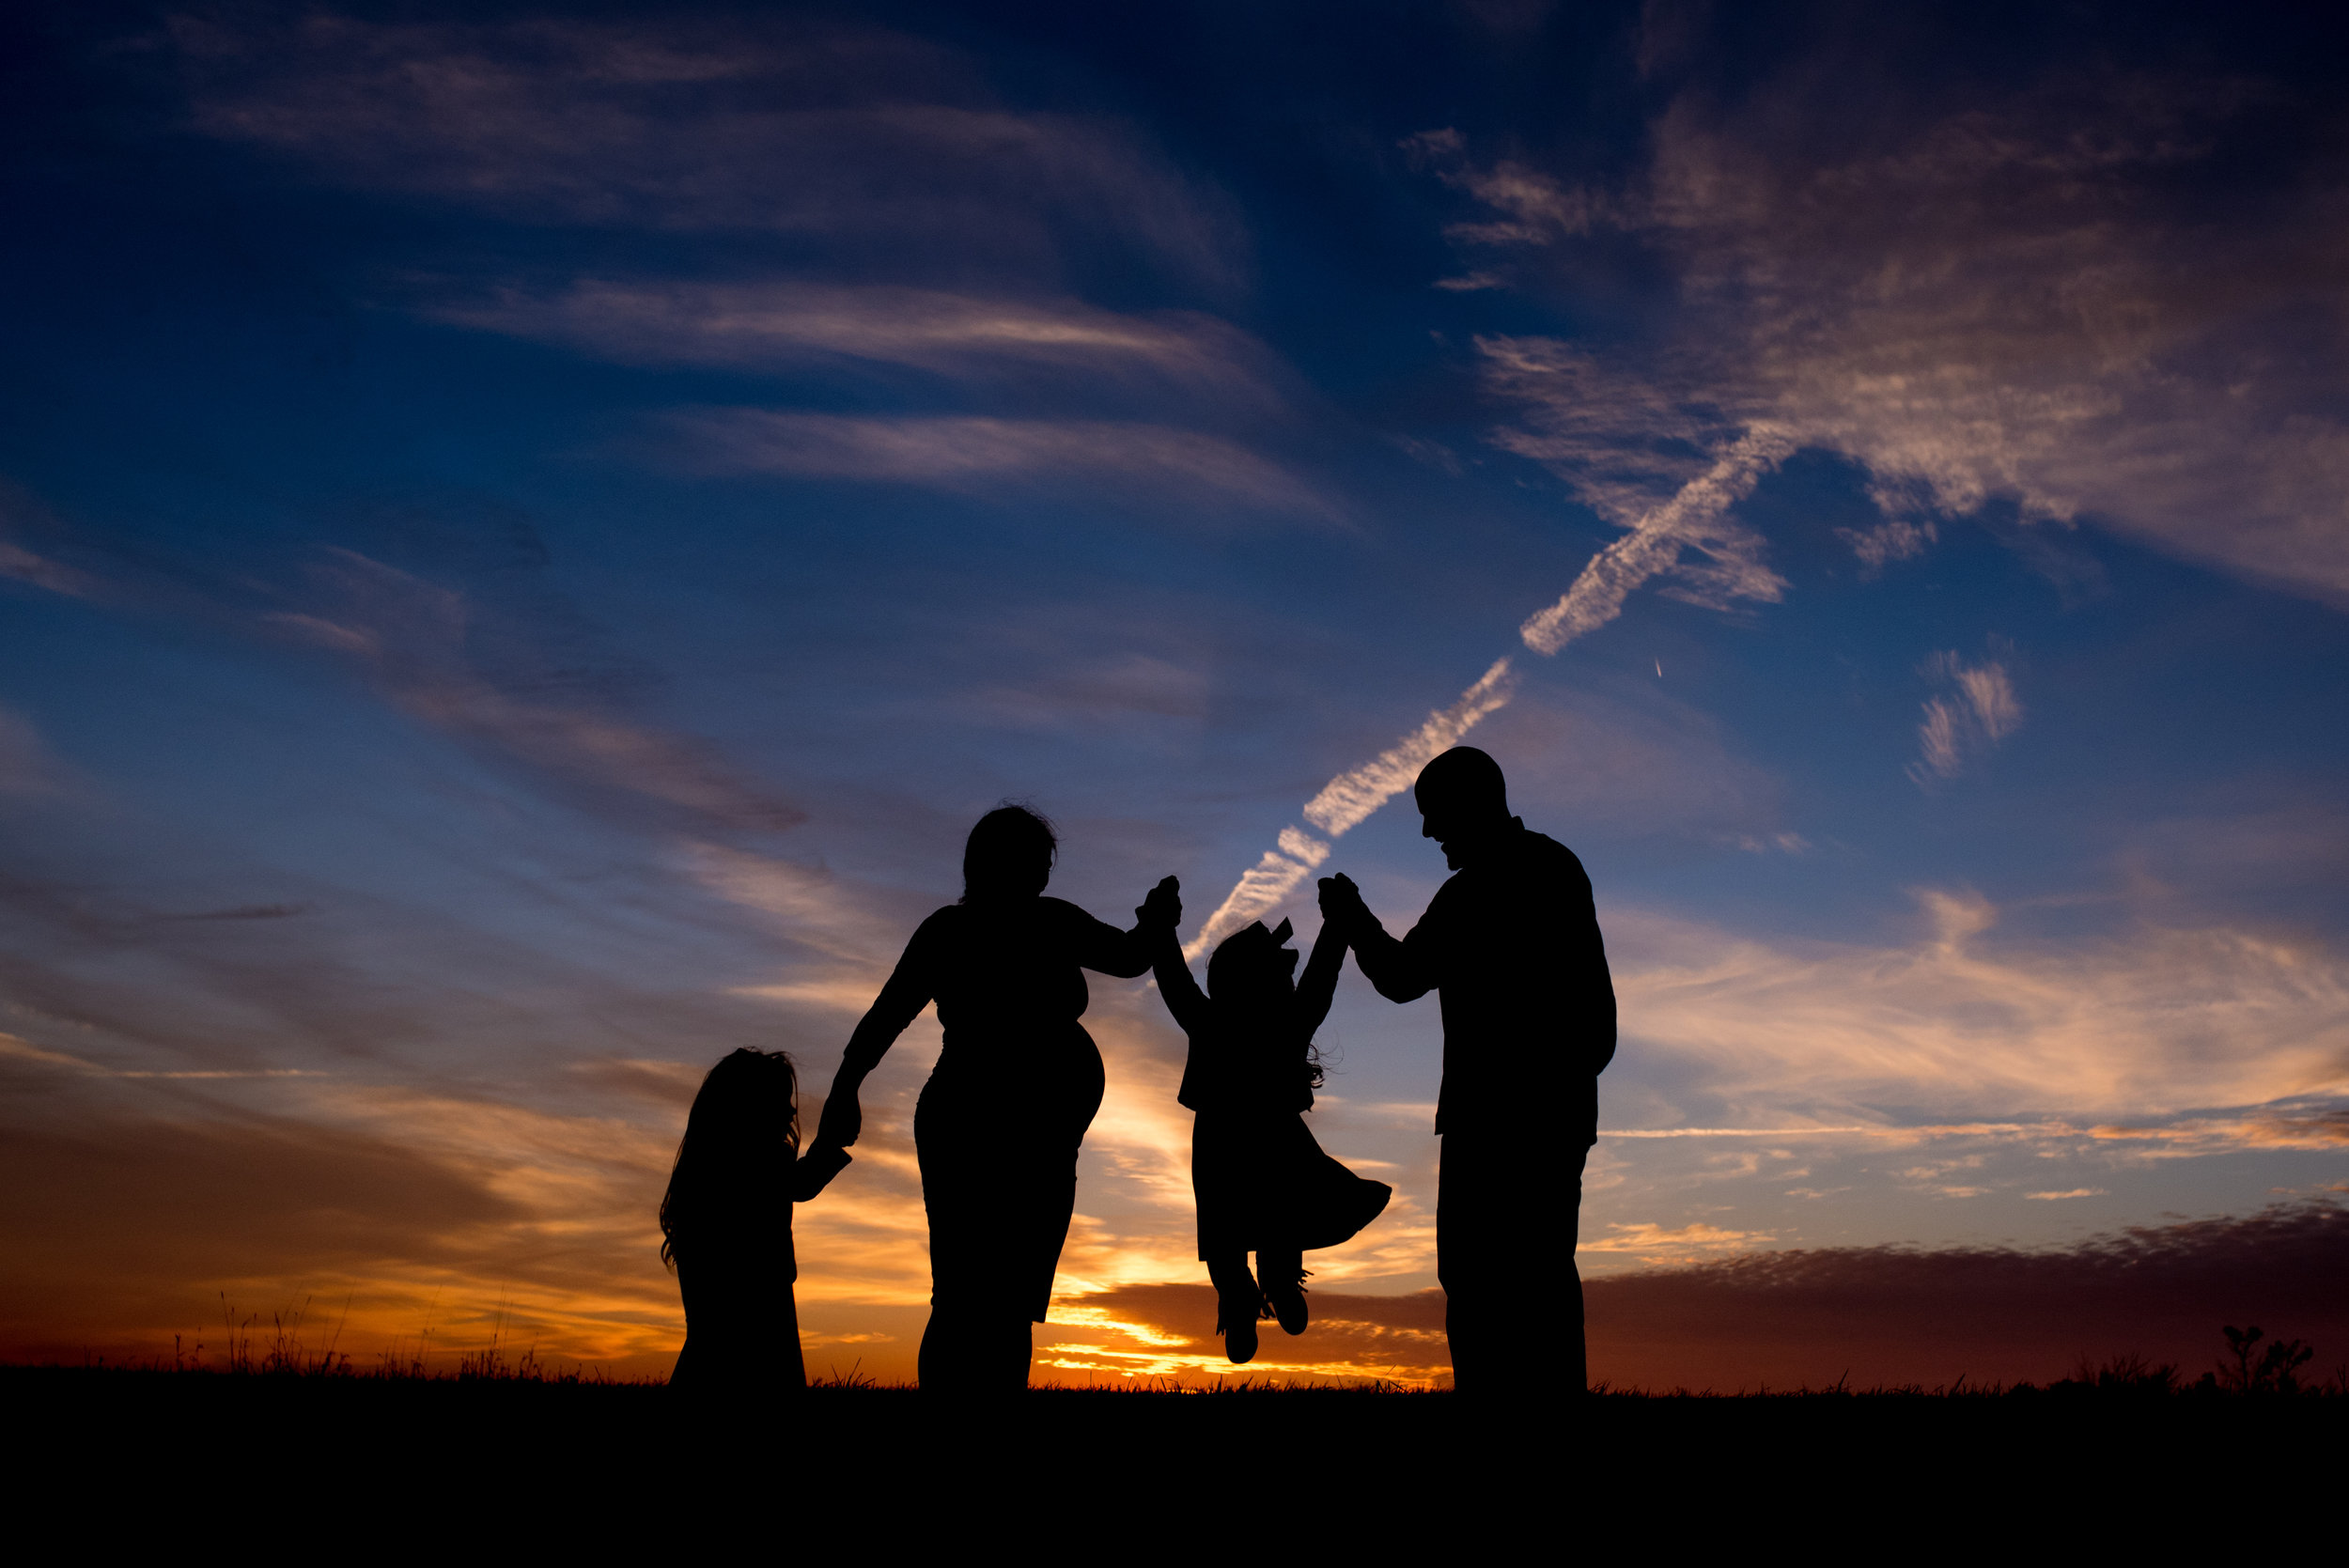 Silhouette of a family at sunset swinging one of their daughters by hand